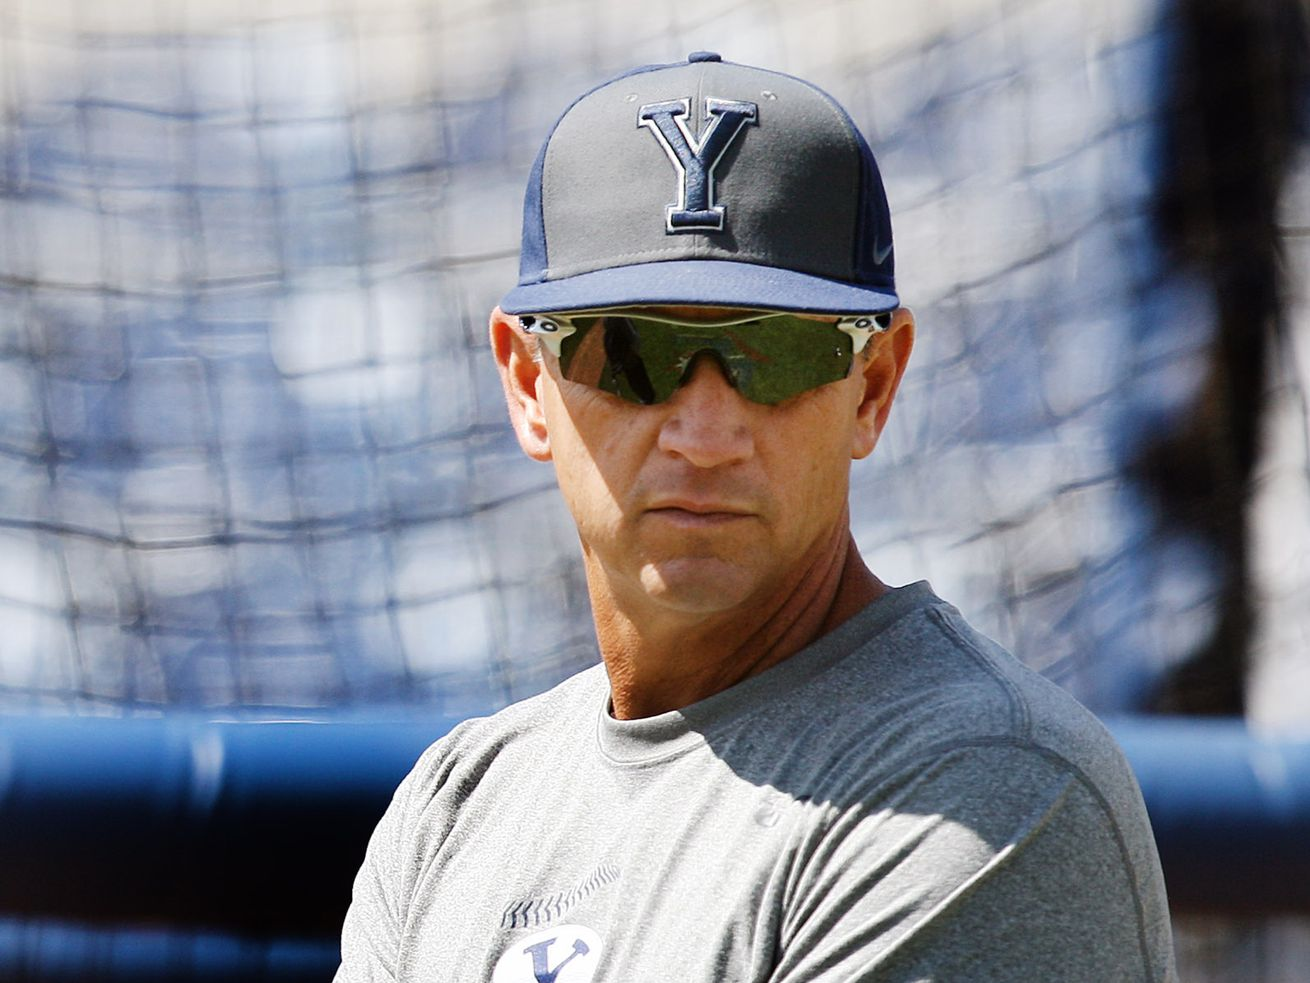 BYU head baseball coach Mike Littlewood watches his players during practice in Provo Monday, May 23, 2016. The Cougars' coach since 2012 had to tell his players last Thursday that their season was canceled due to the spread of a novel coronavirus